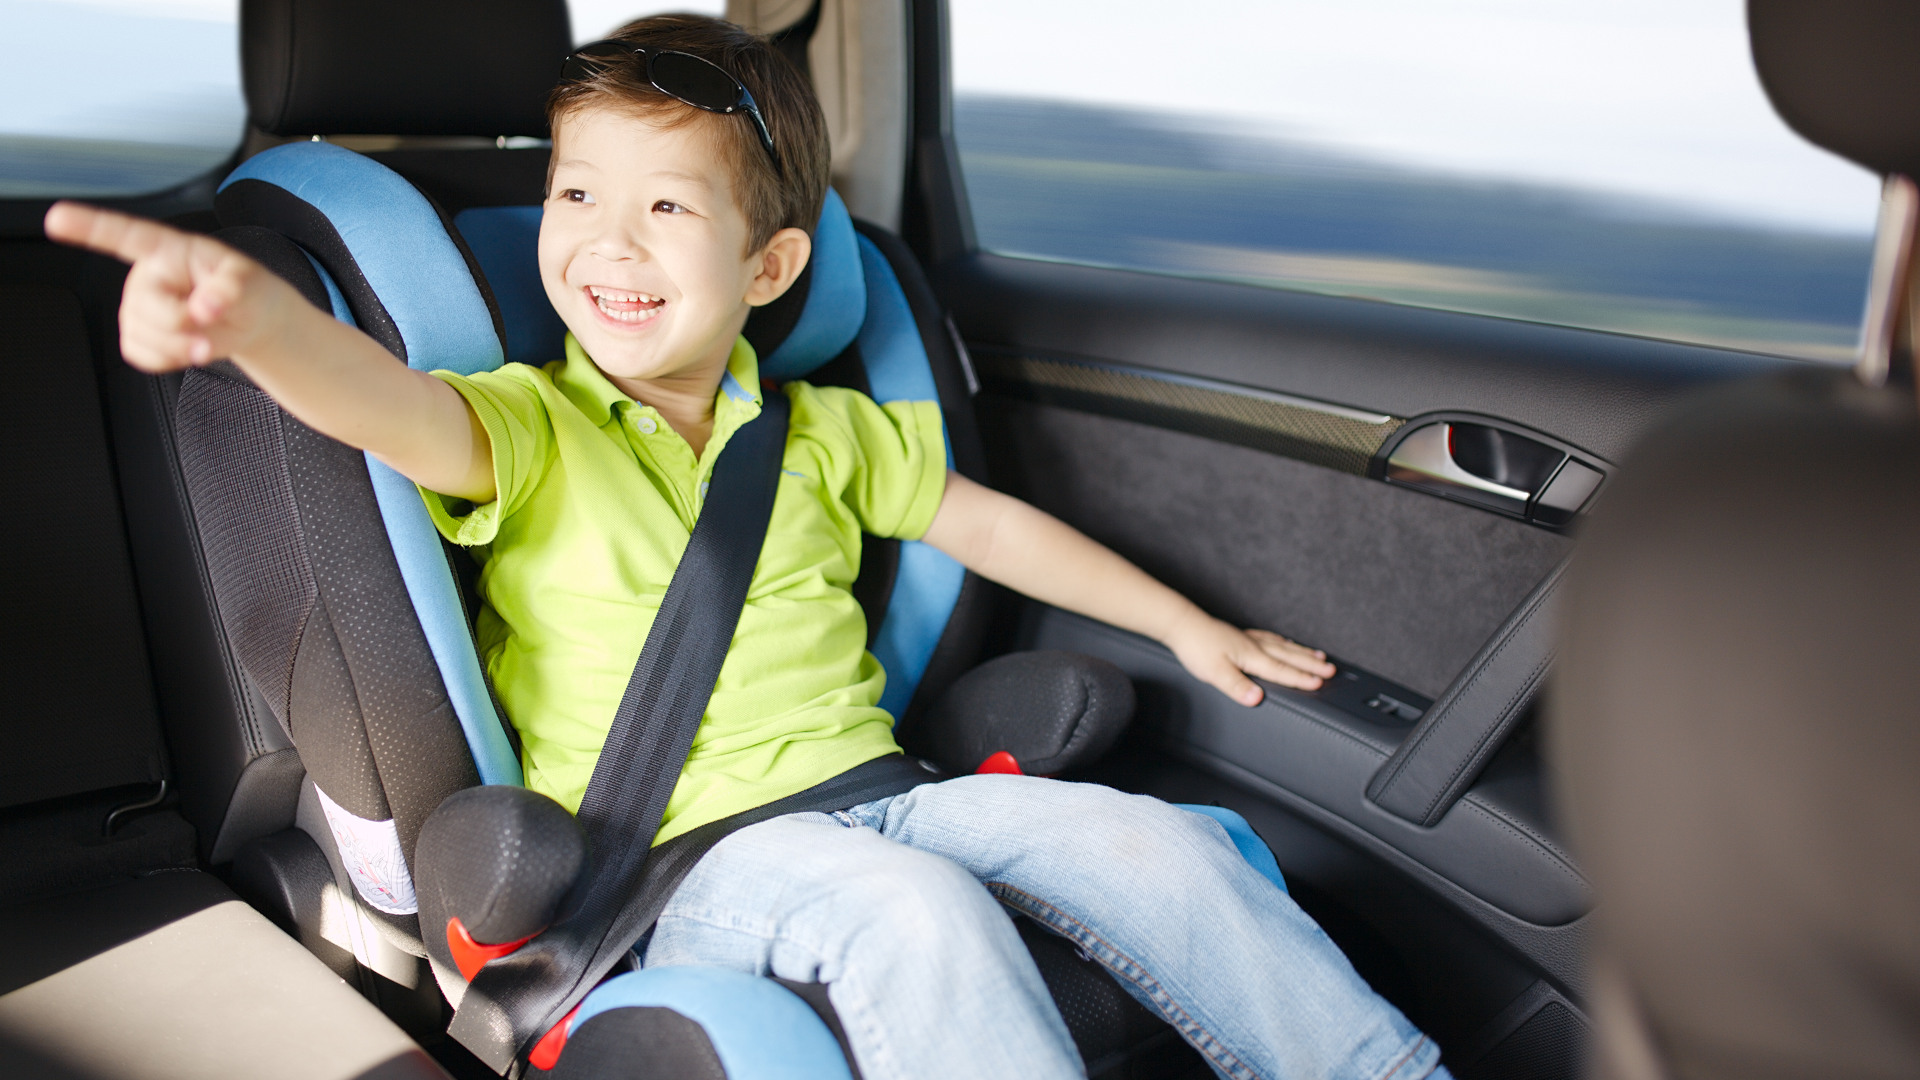 """Why a 4'11"""" child needs a booster seat and a 4'11"""" adult doesn't"""